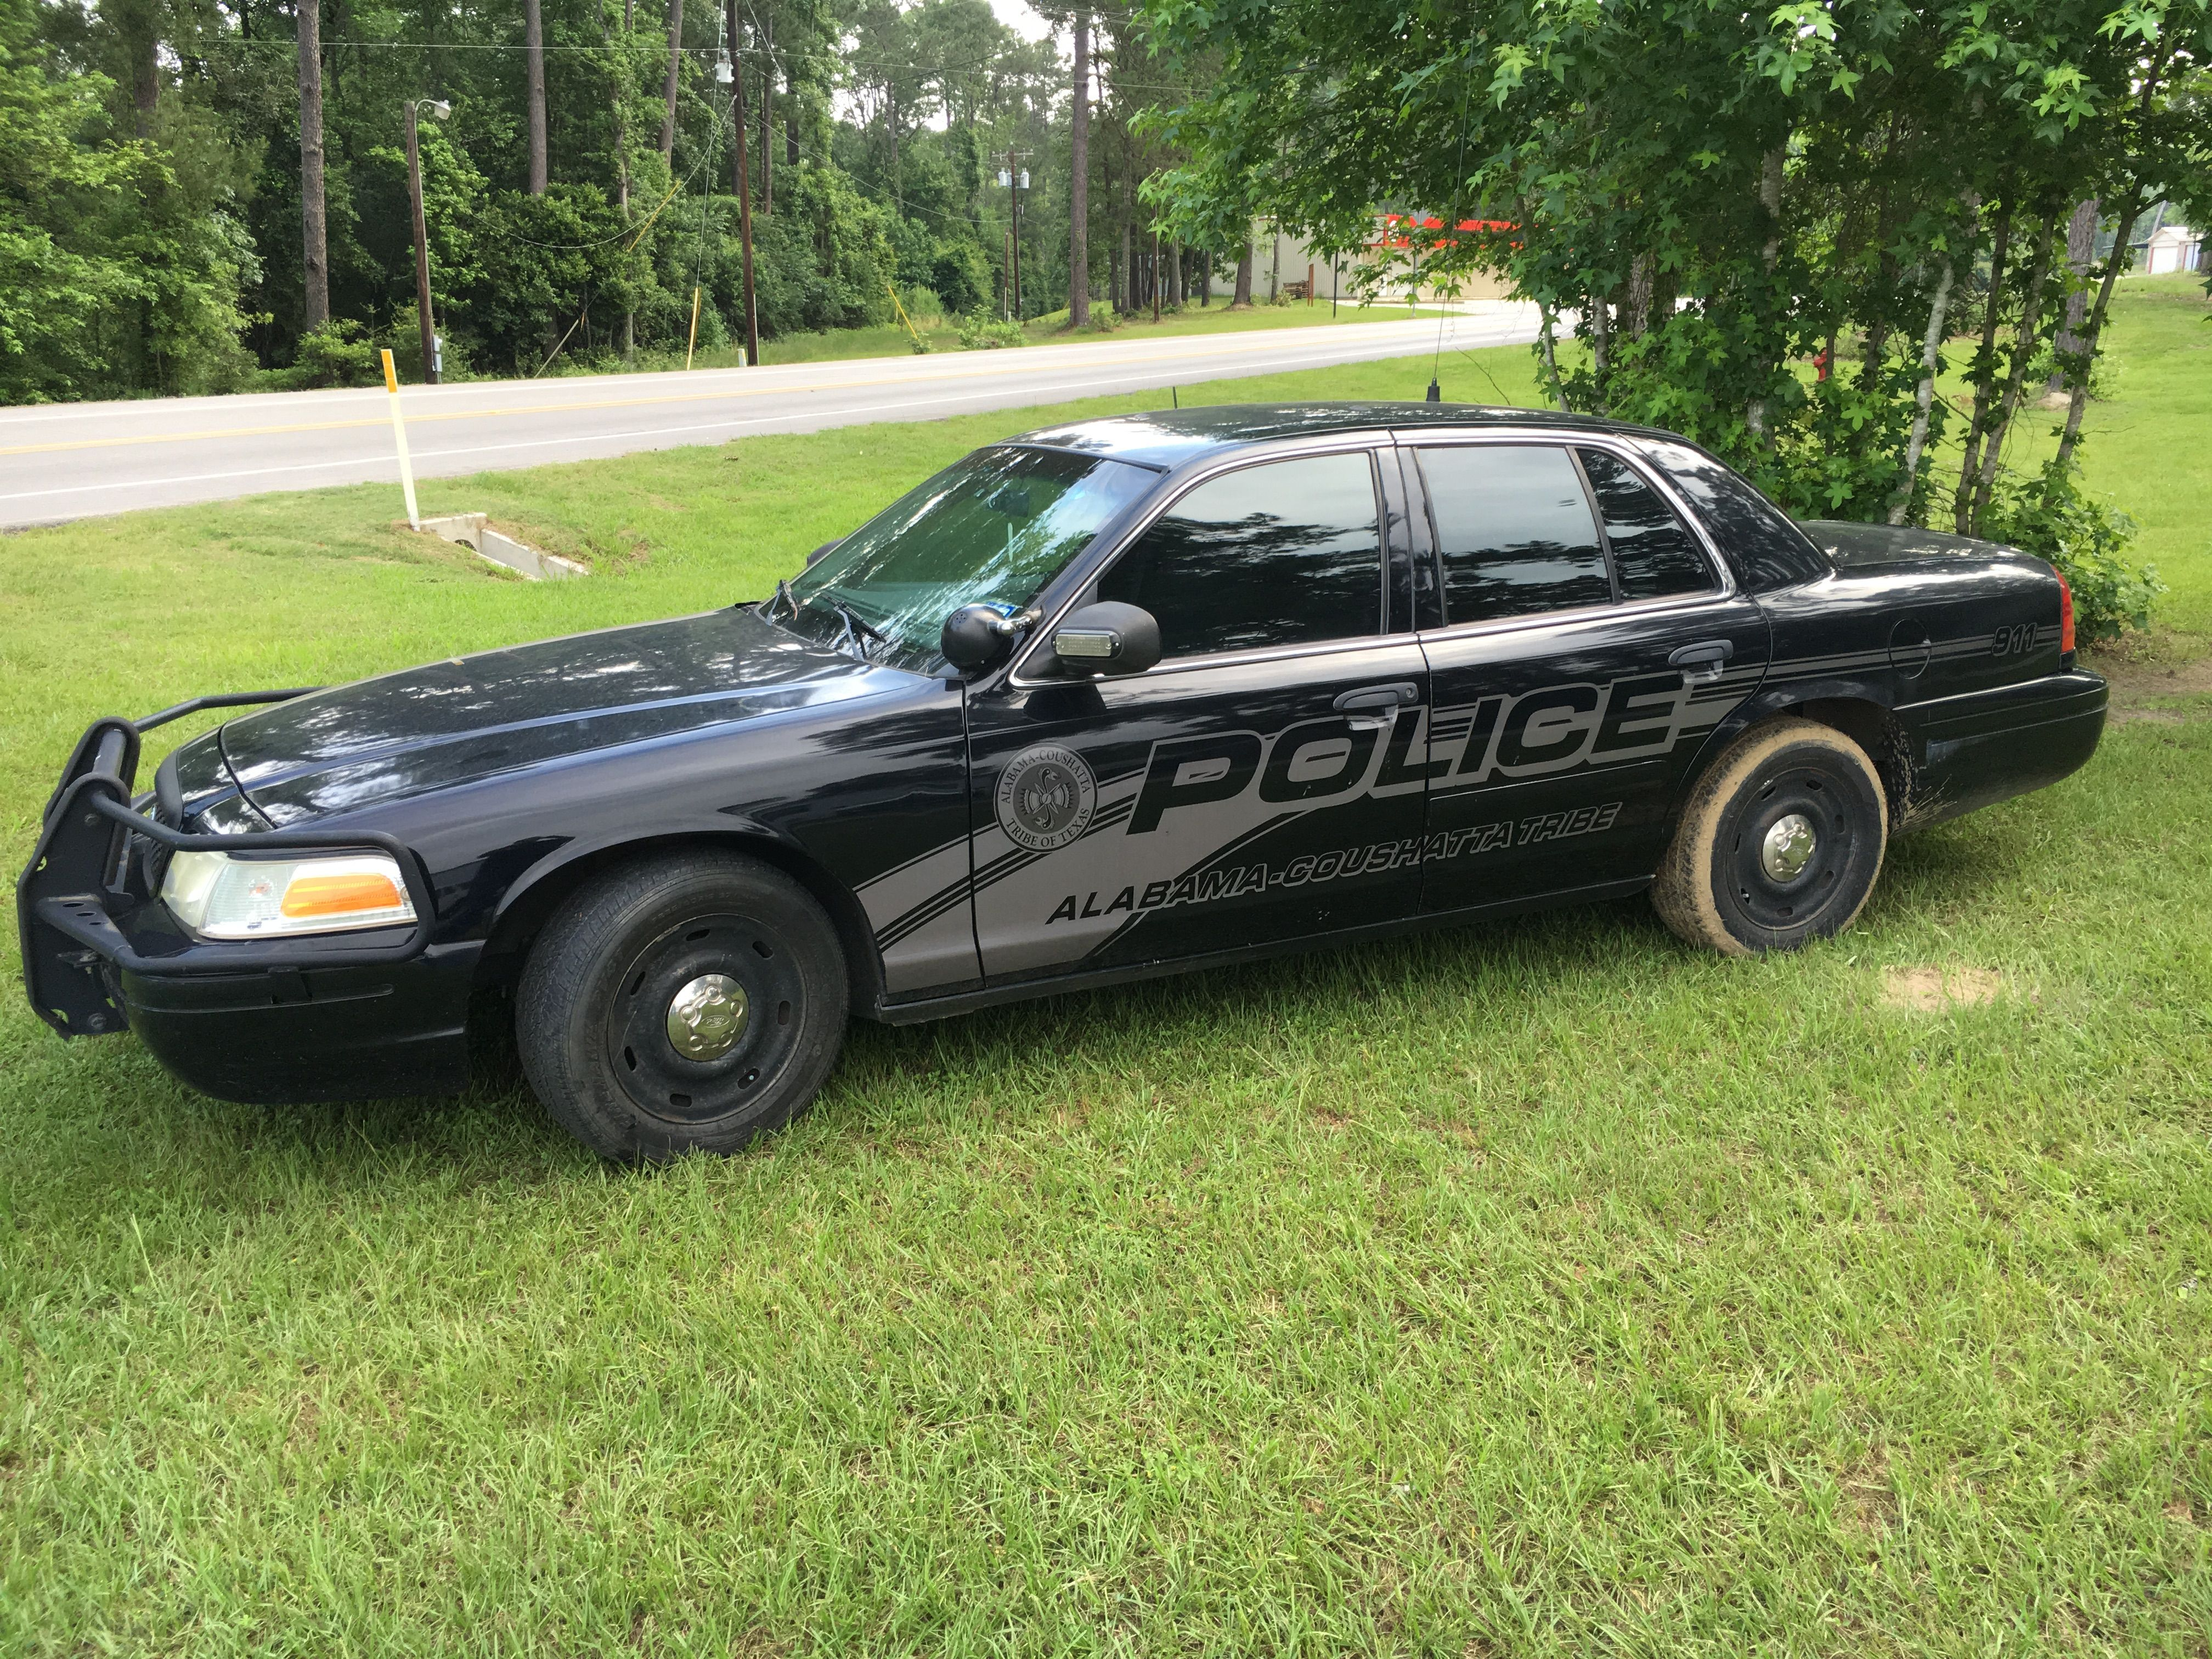 Alabama coushatta tribal police dept ghost ford crown victoria